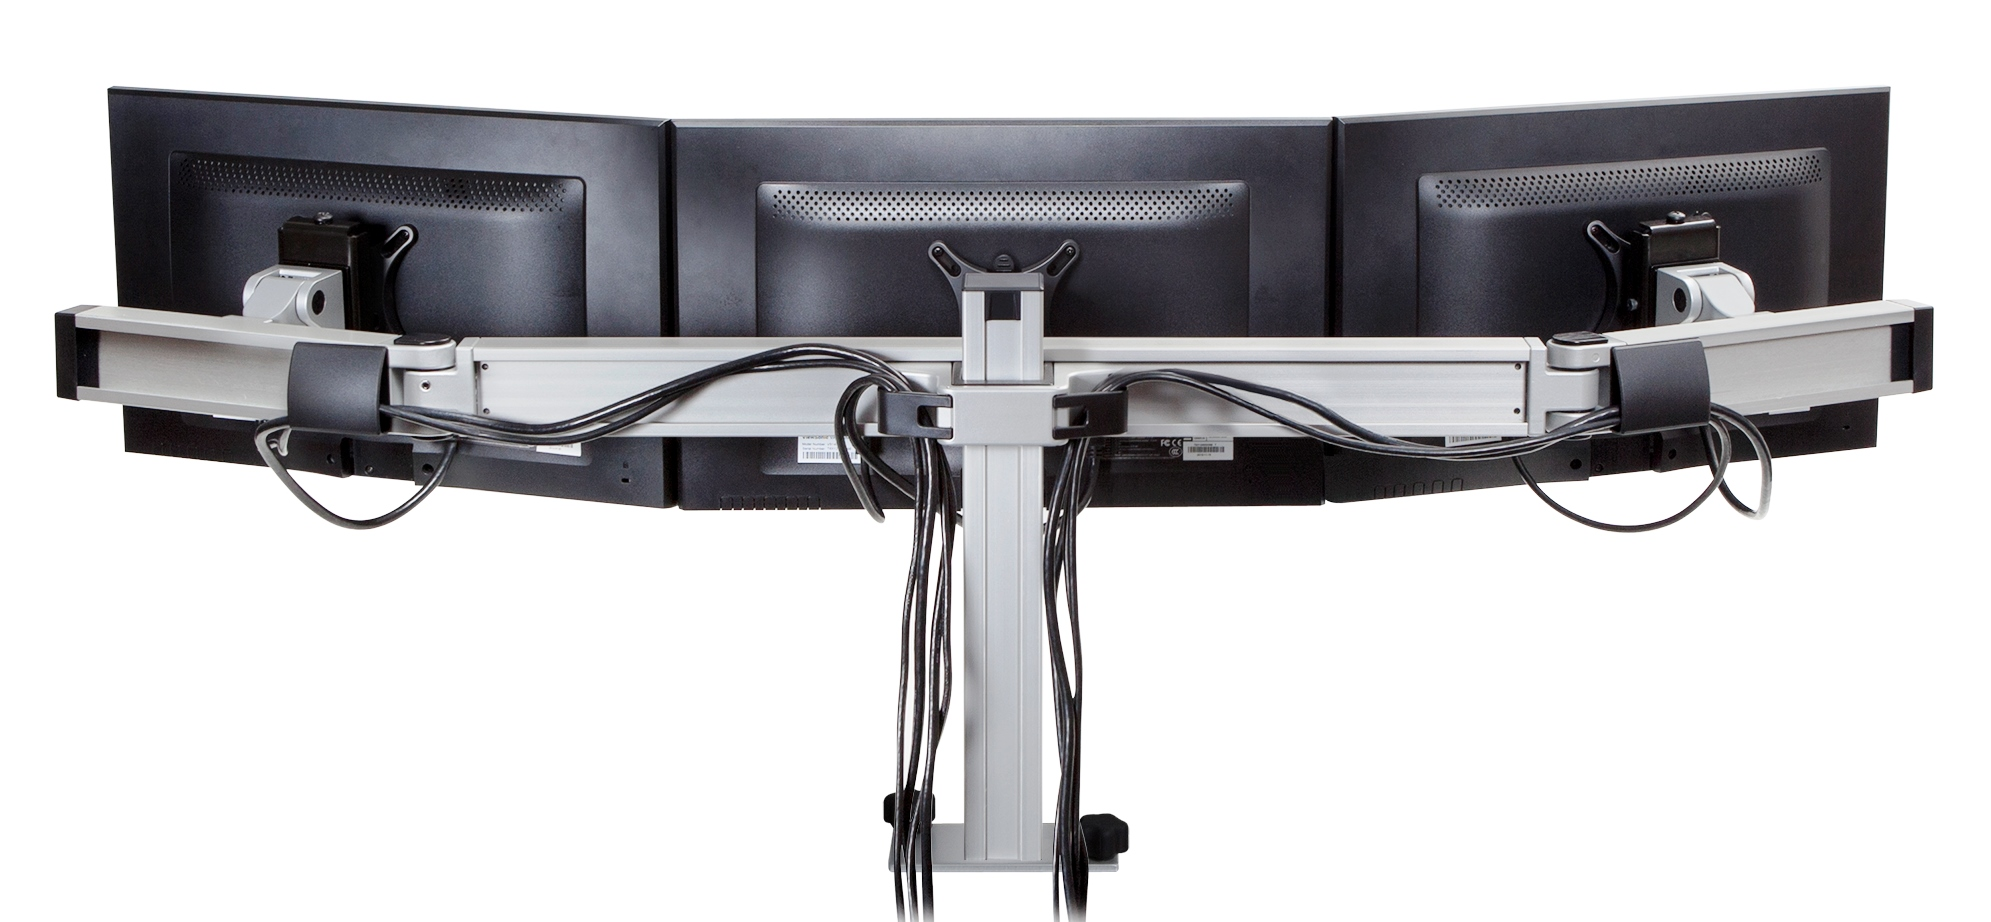 Innovative Bild Triple Monitor Mount Bild 3 Multi